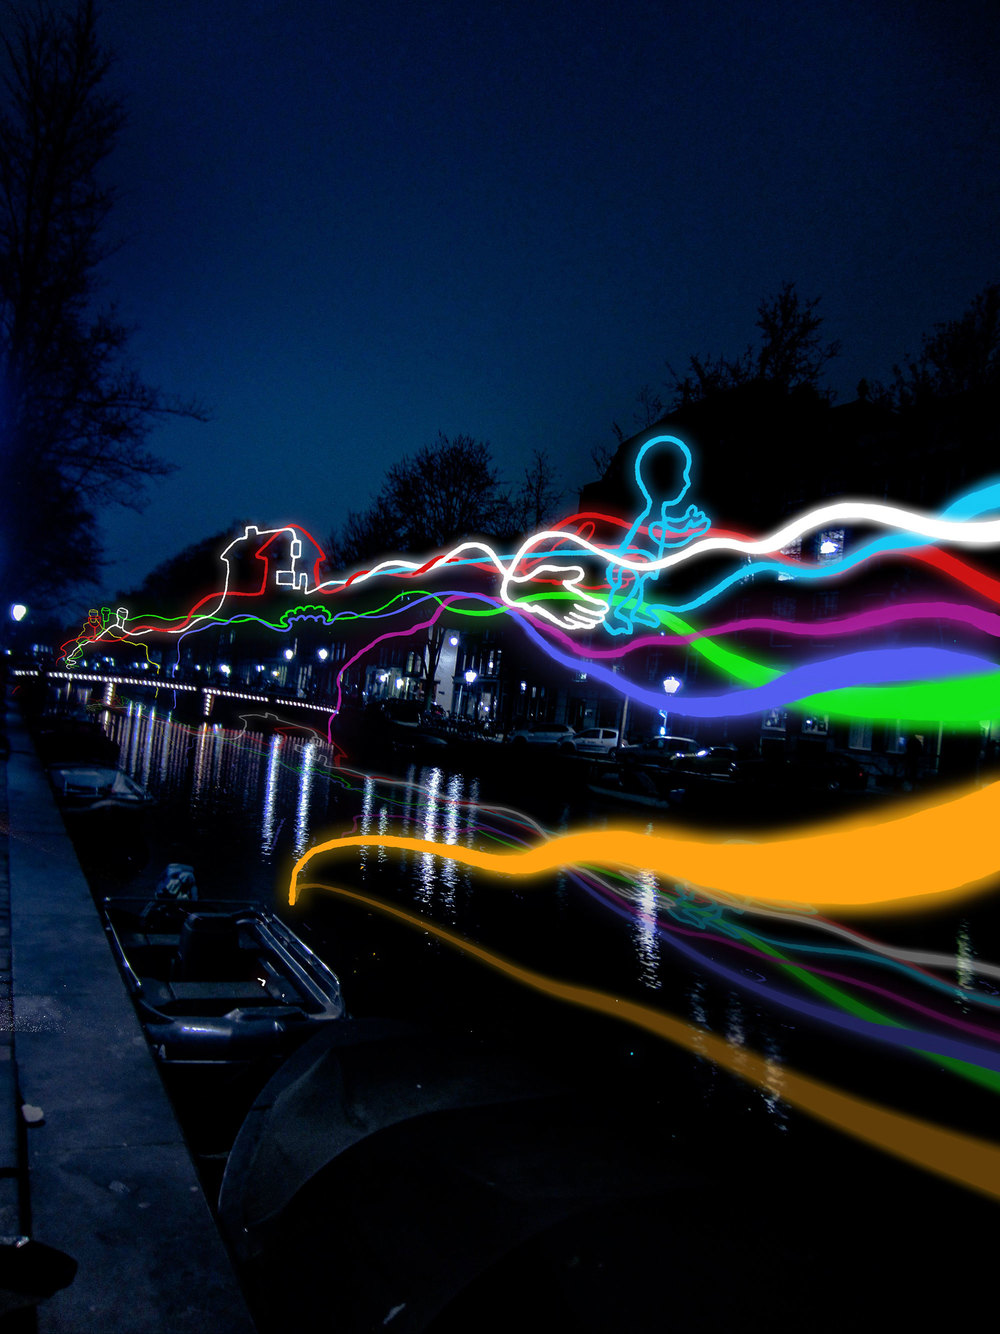 LIGHTING UP THE CITY: AMSTERDAM LIGHT FESTIVAL